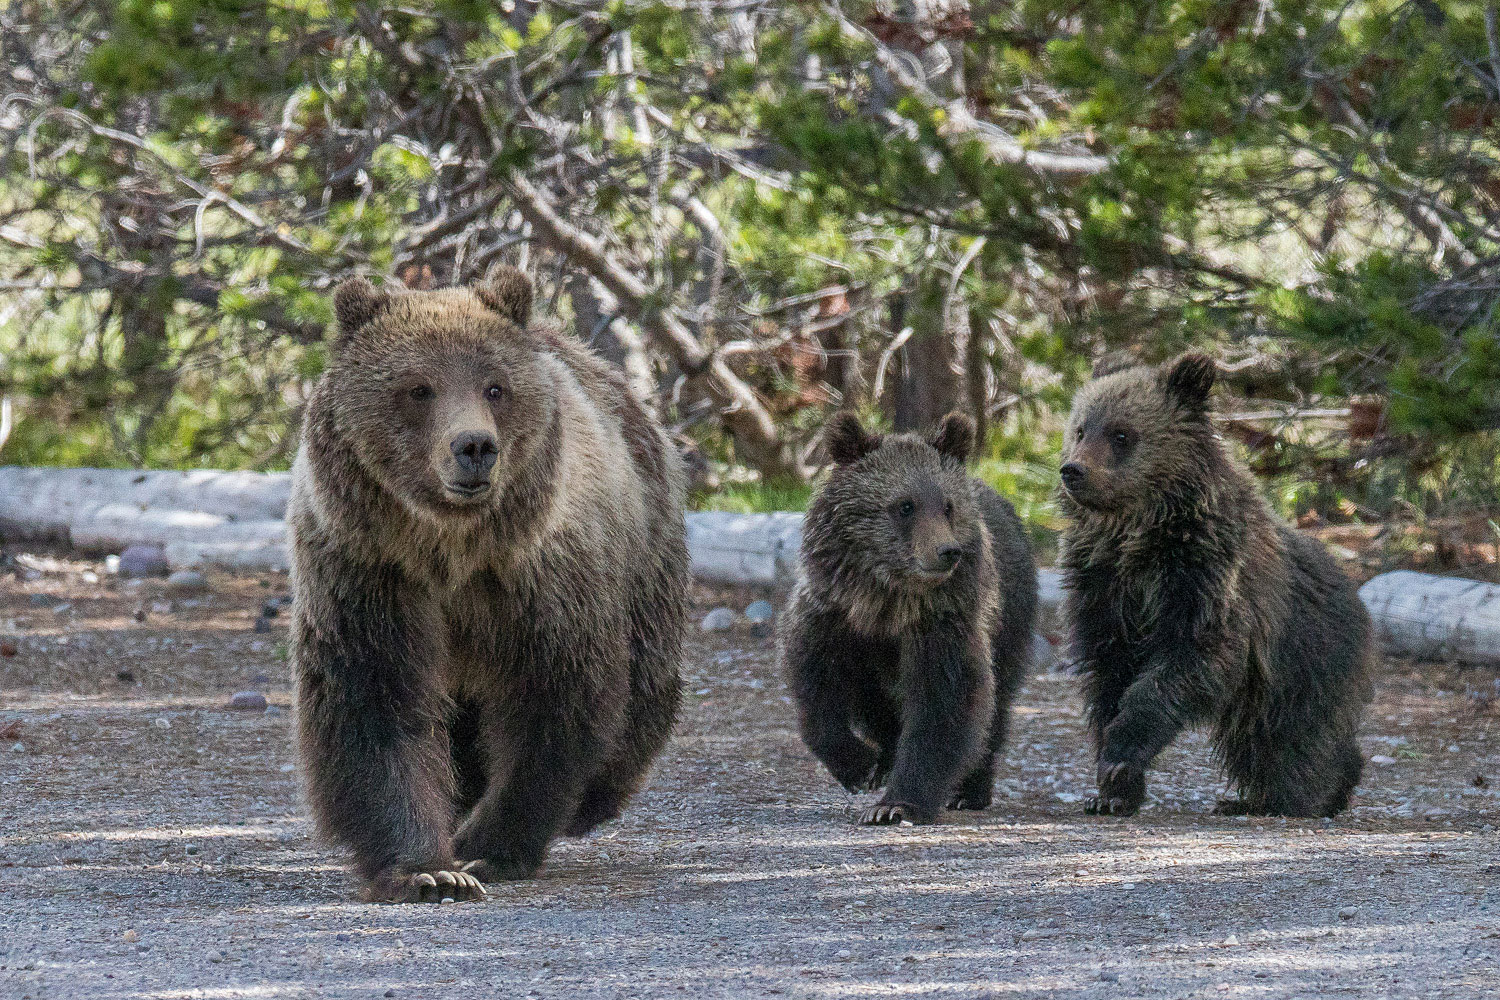 Grizzly bear Blondie leads her two subadult cubs from a nearby corral.